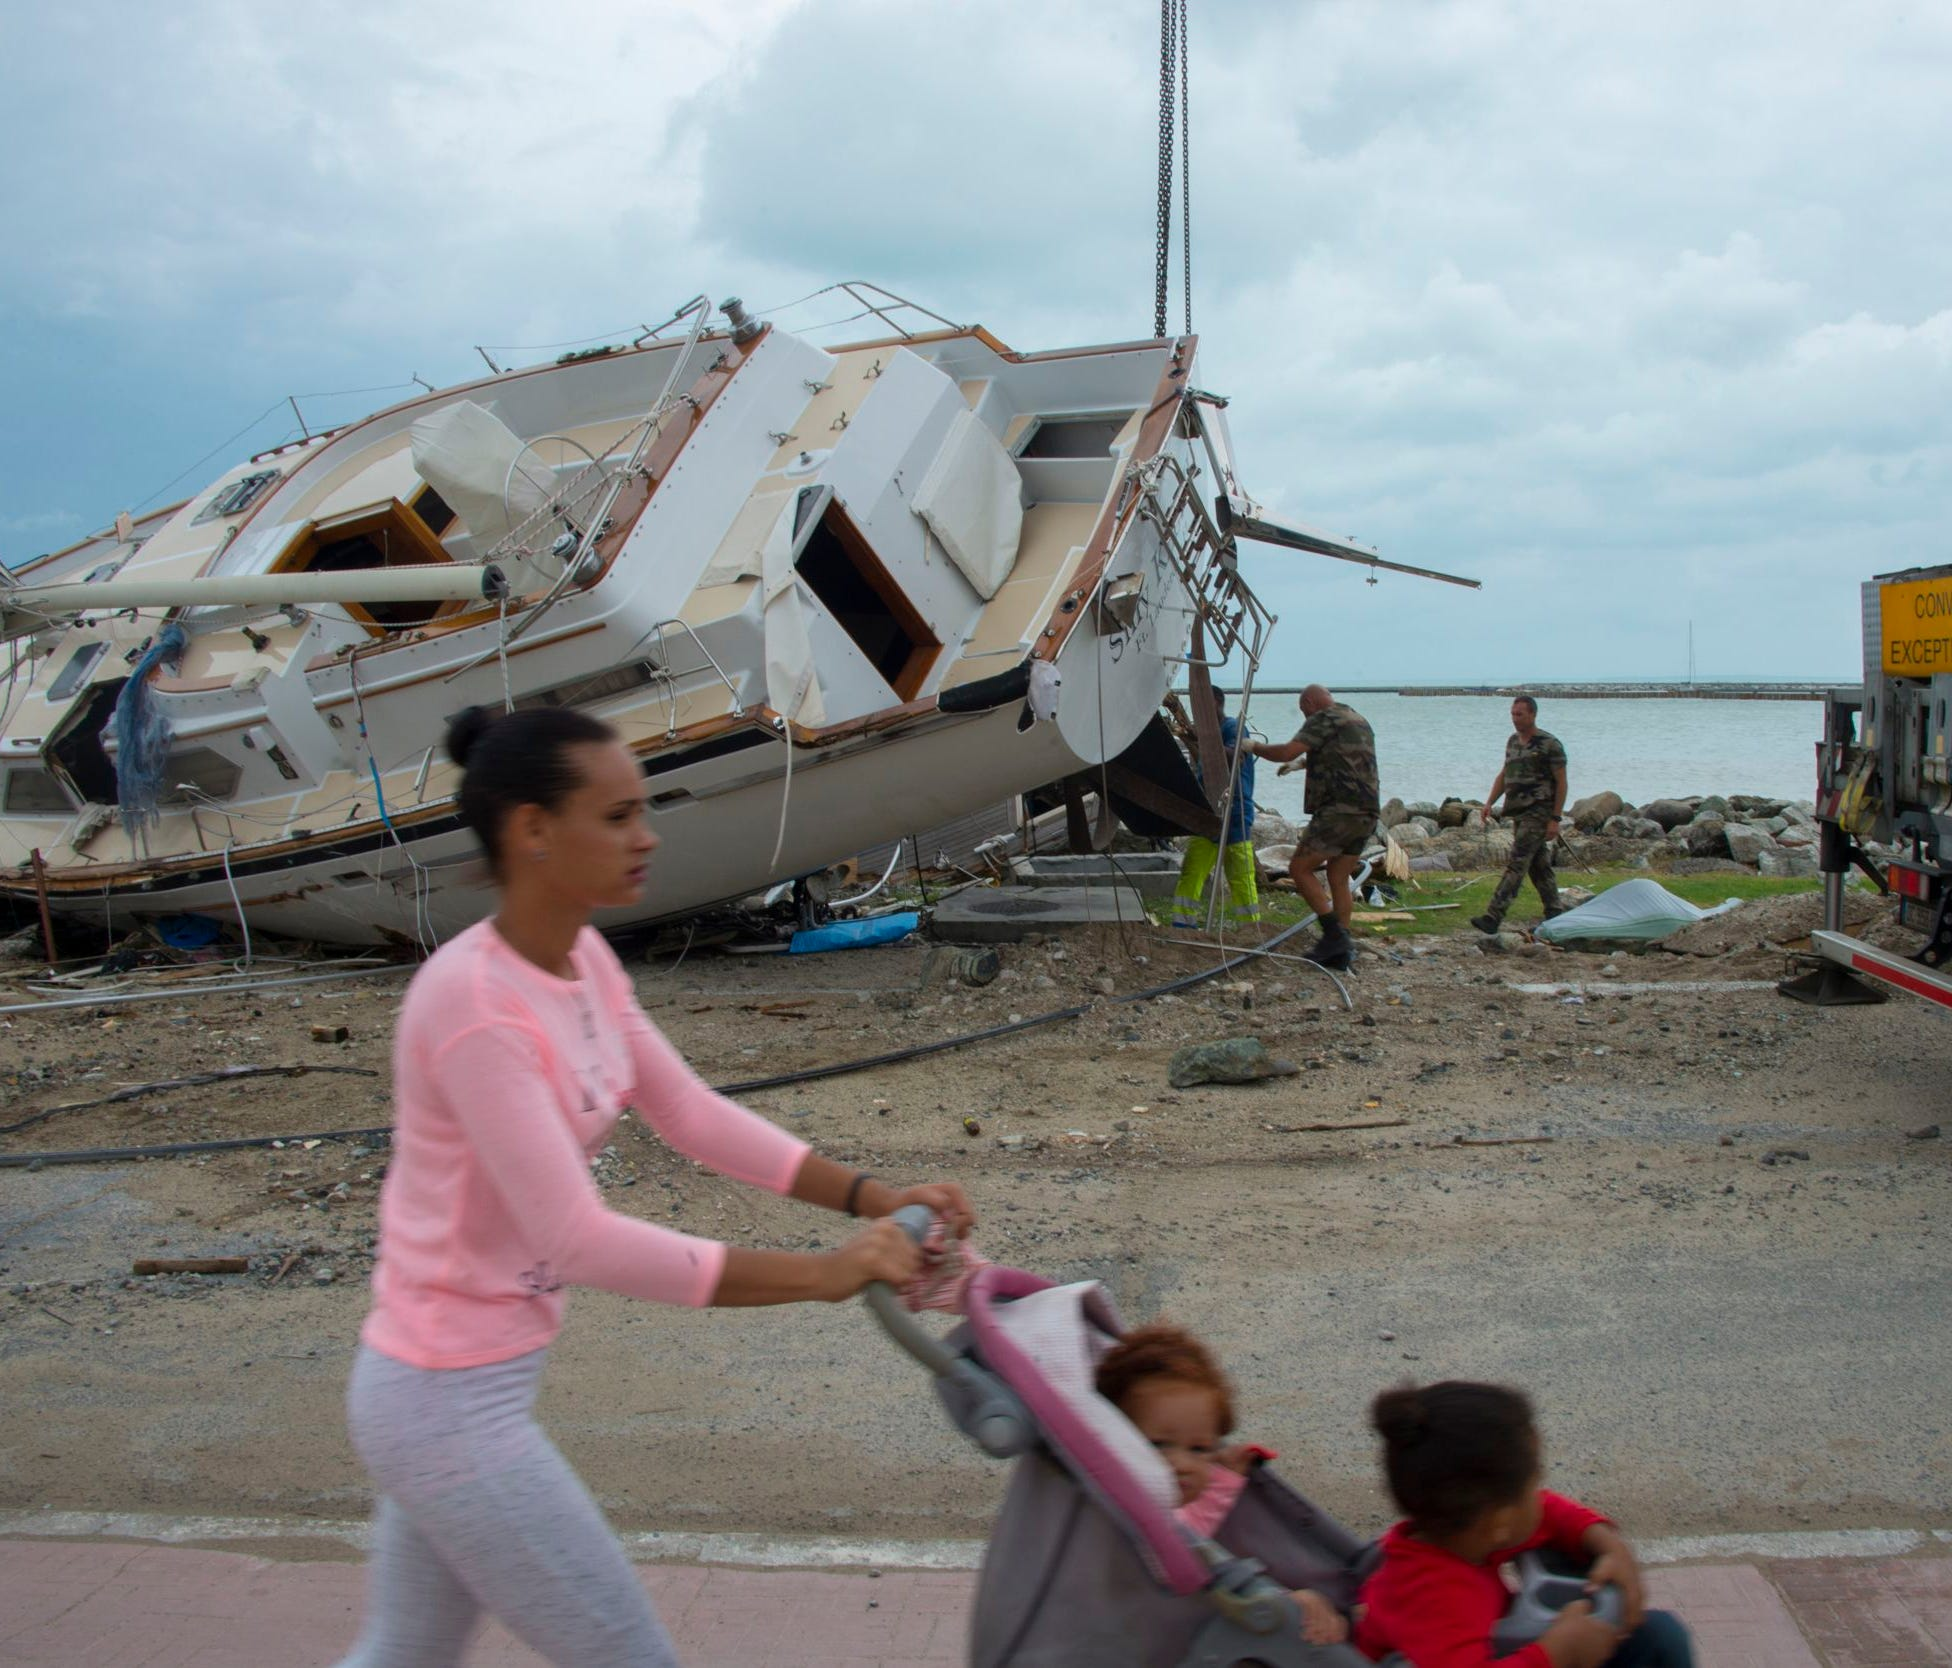 A woman pushes her kids as members of the military help remove damaged boats after the passage of hurricane Irma and Maria in Orient Bay, St. Martin, on Sept. 20, 2017.